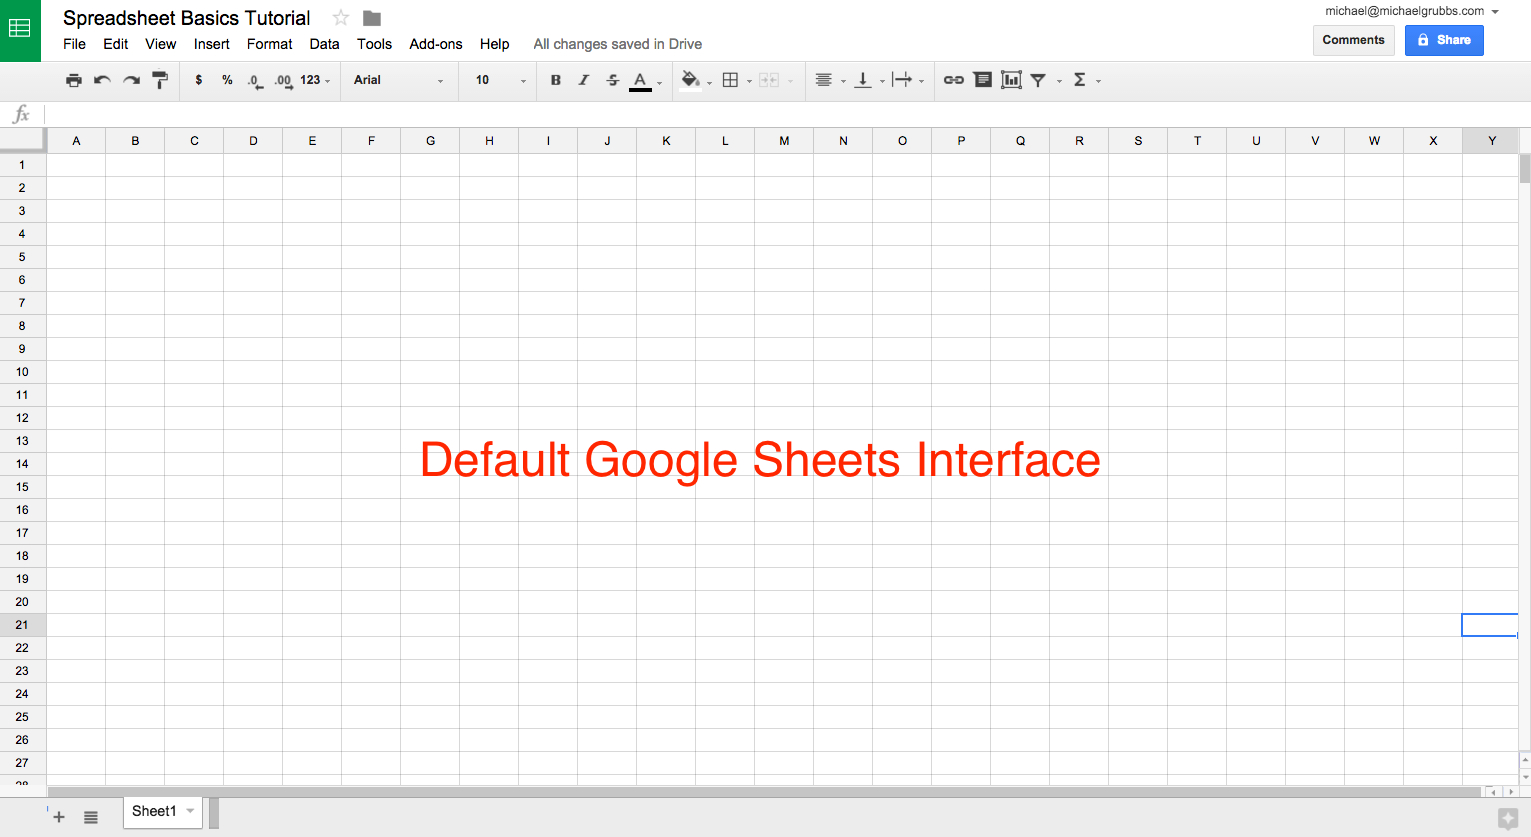 How To Insert Data In Google Spreadsheet In Google Sheets 101: The Beginner's Guide To Online Spreadsheets  The